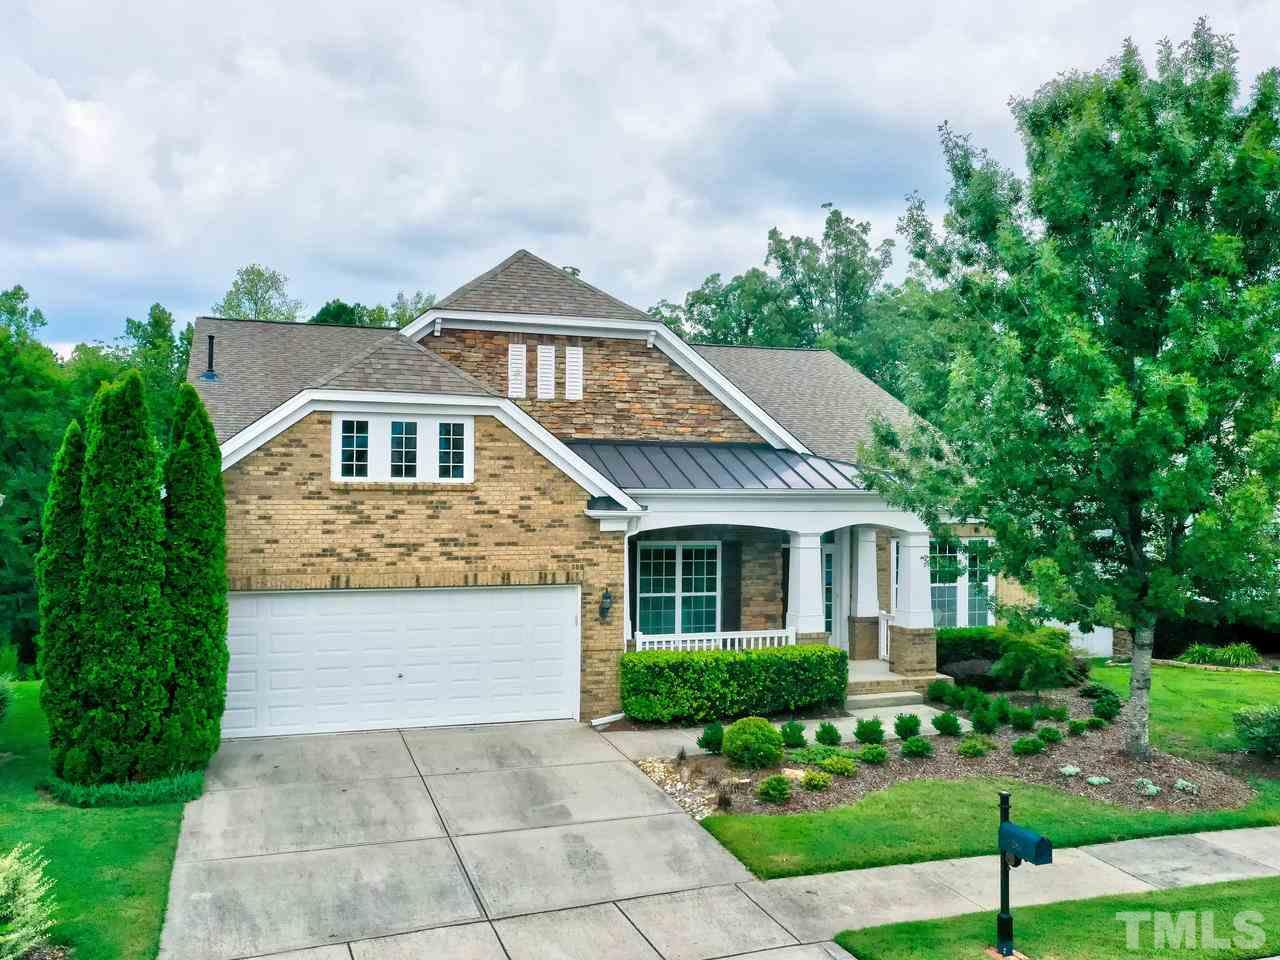 Simplicity + elegance = Fabulous! Morningside Lane model with stone and brick accents, welcoming front porch with wooded views. Yard irrigation system plus soaking hoses in plant beds.